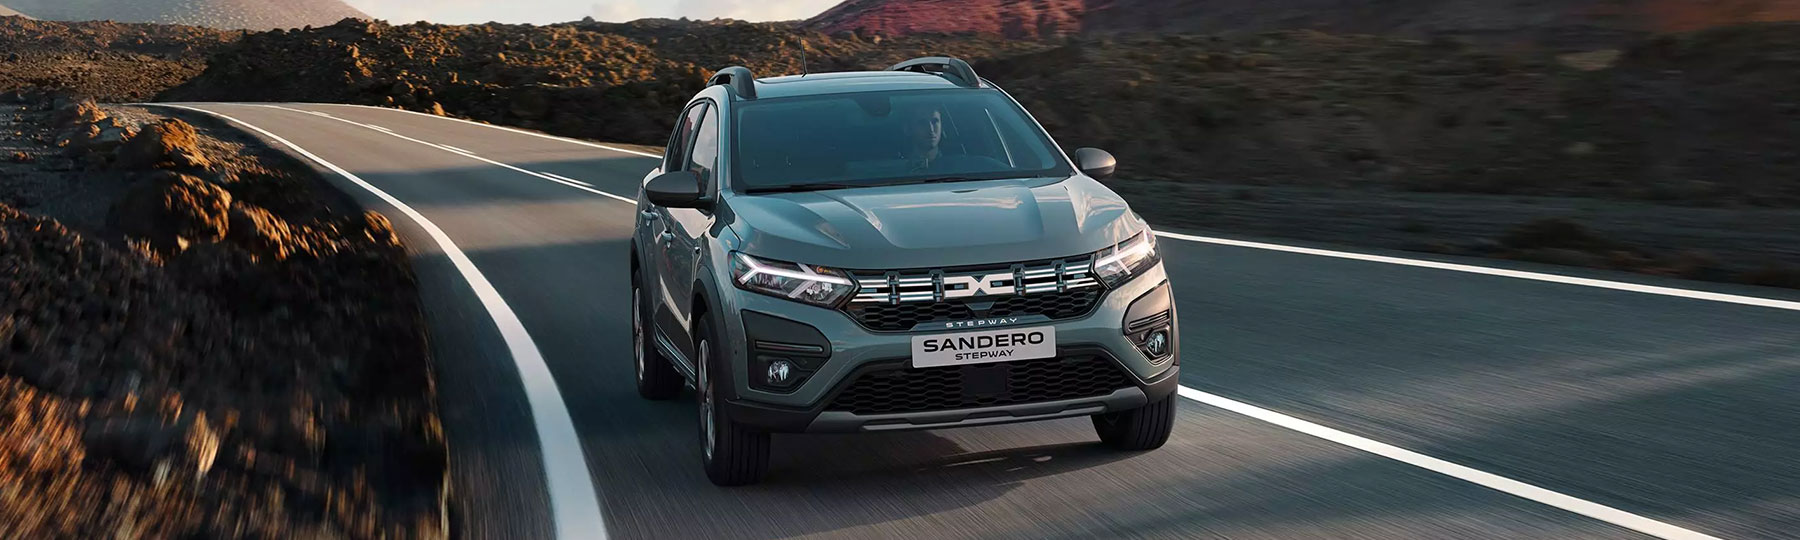 dacia sandero stepway cars with motability new dacia sandero stepway cars with quick delivery. Black Bedroom Furniture Sets. Home Design Ideas